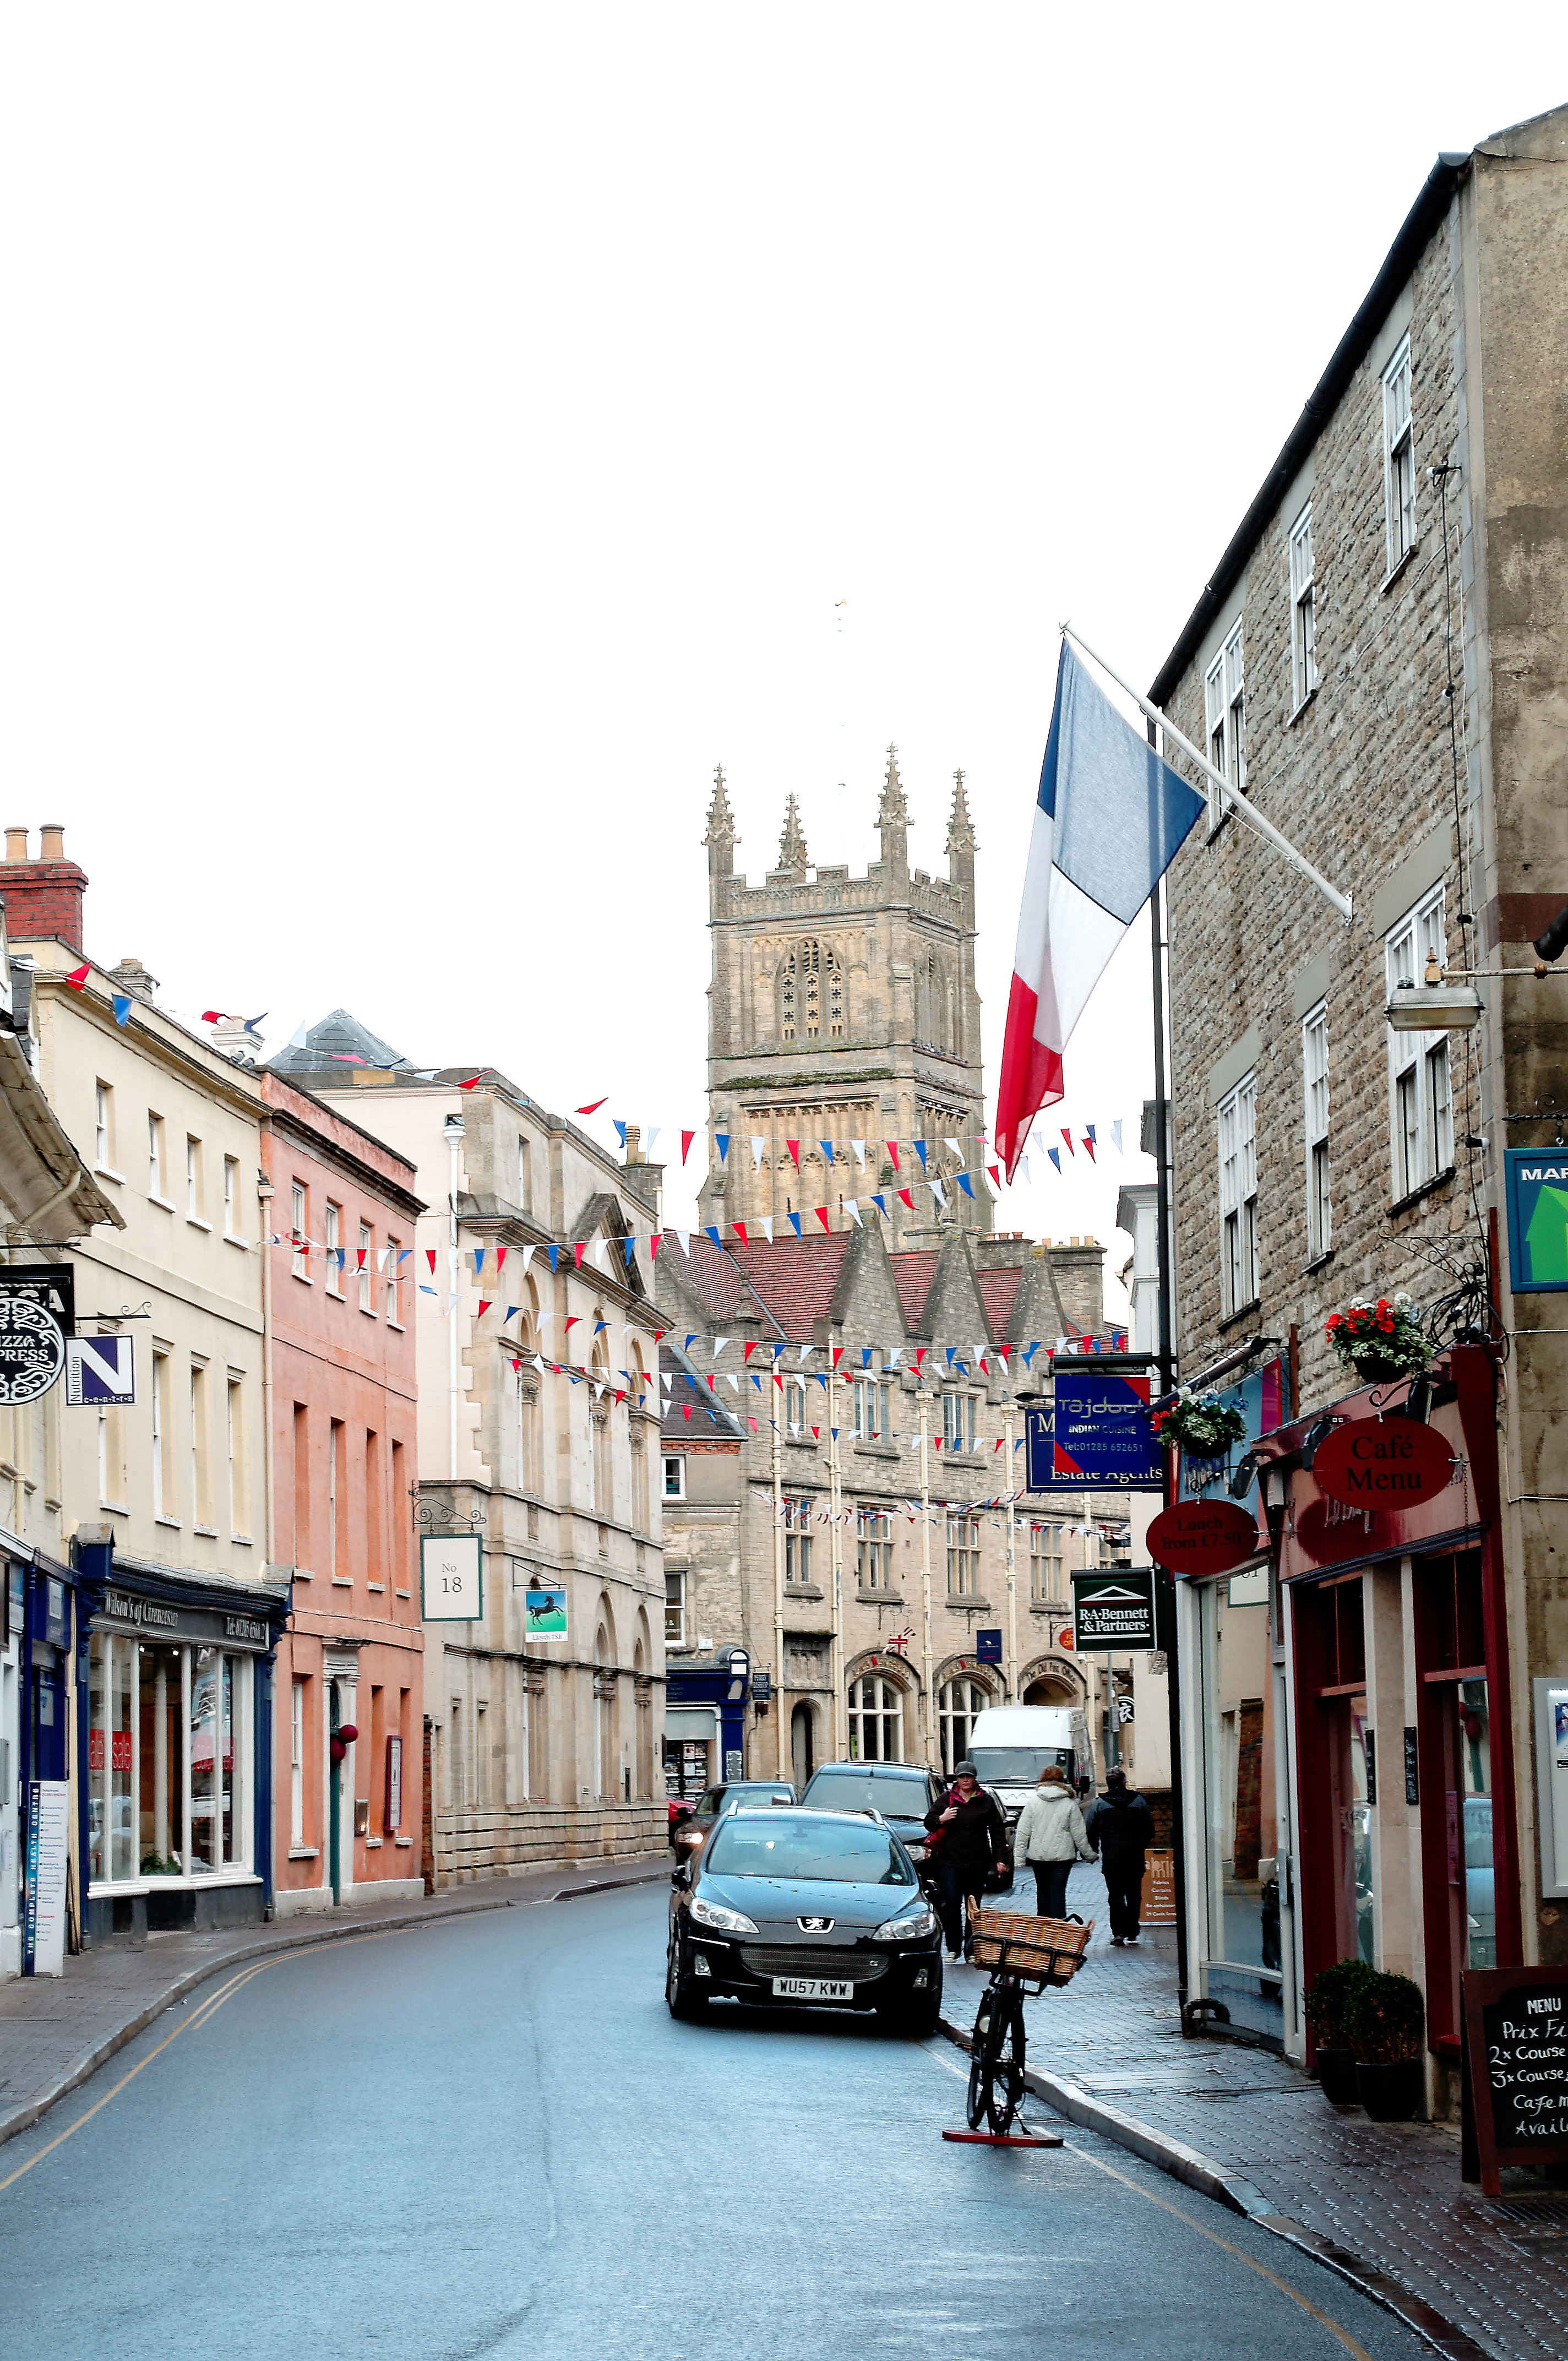 Cirencester United Kingdom  city pictures gallery : Street Cirencester Cirencester, United Kingdom